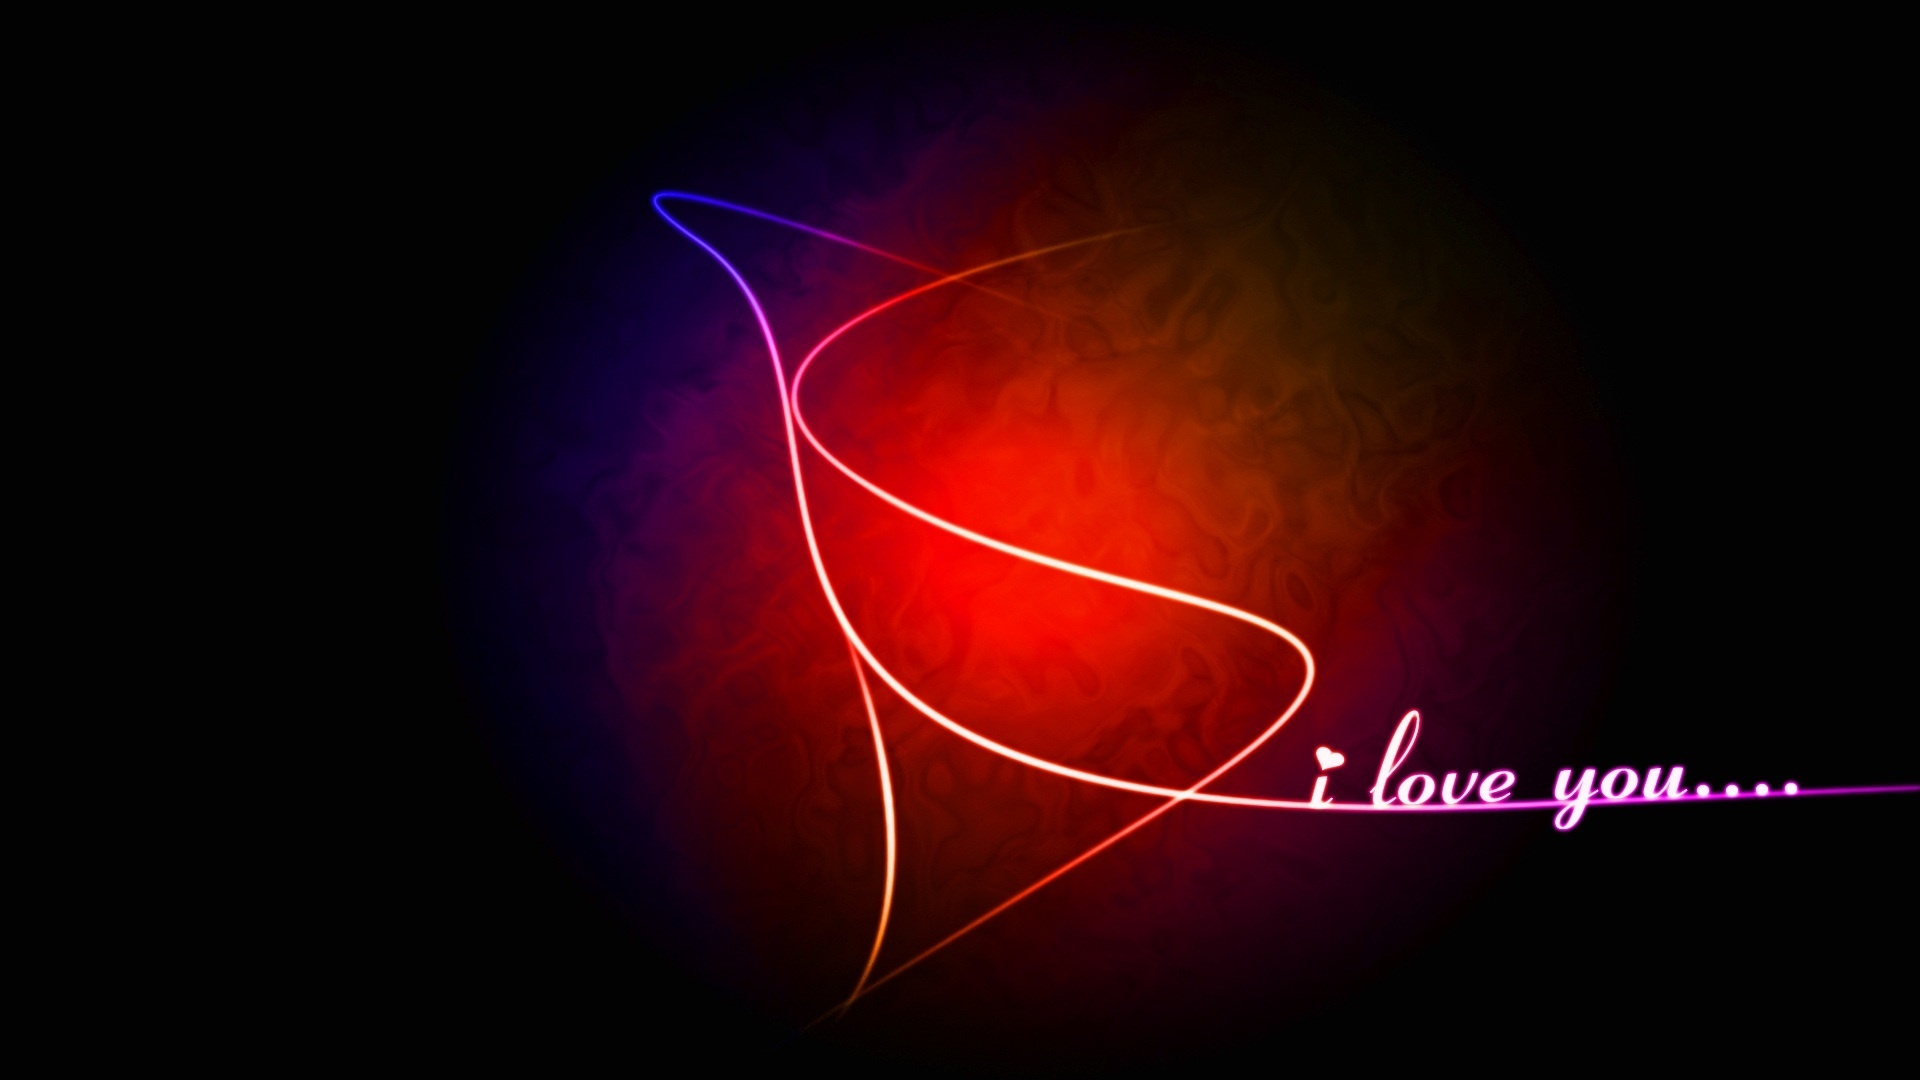 Love Wallpapers 1080x1920 : I love you In Abstract Wallpapers - 1920x1080 - 181127